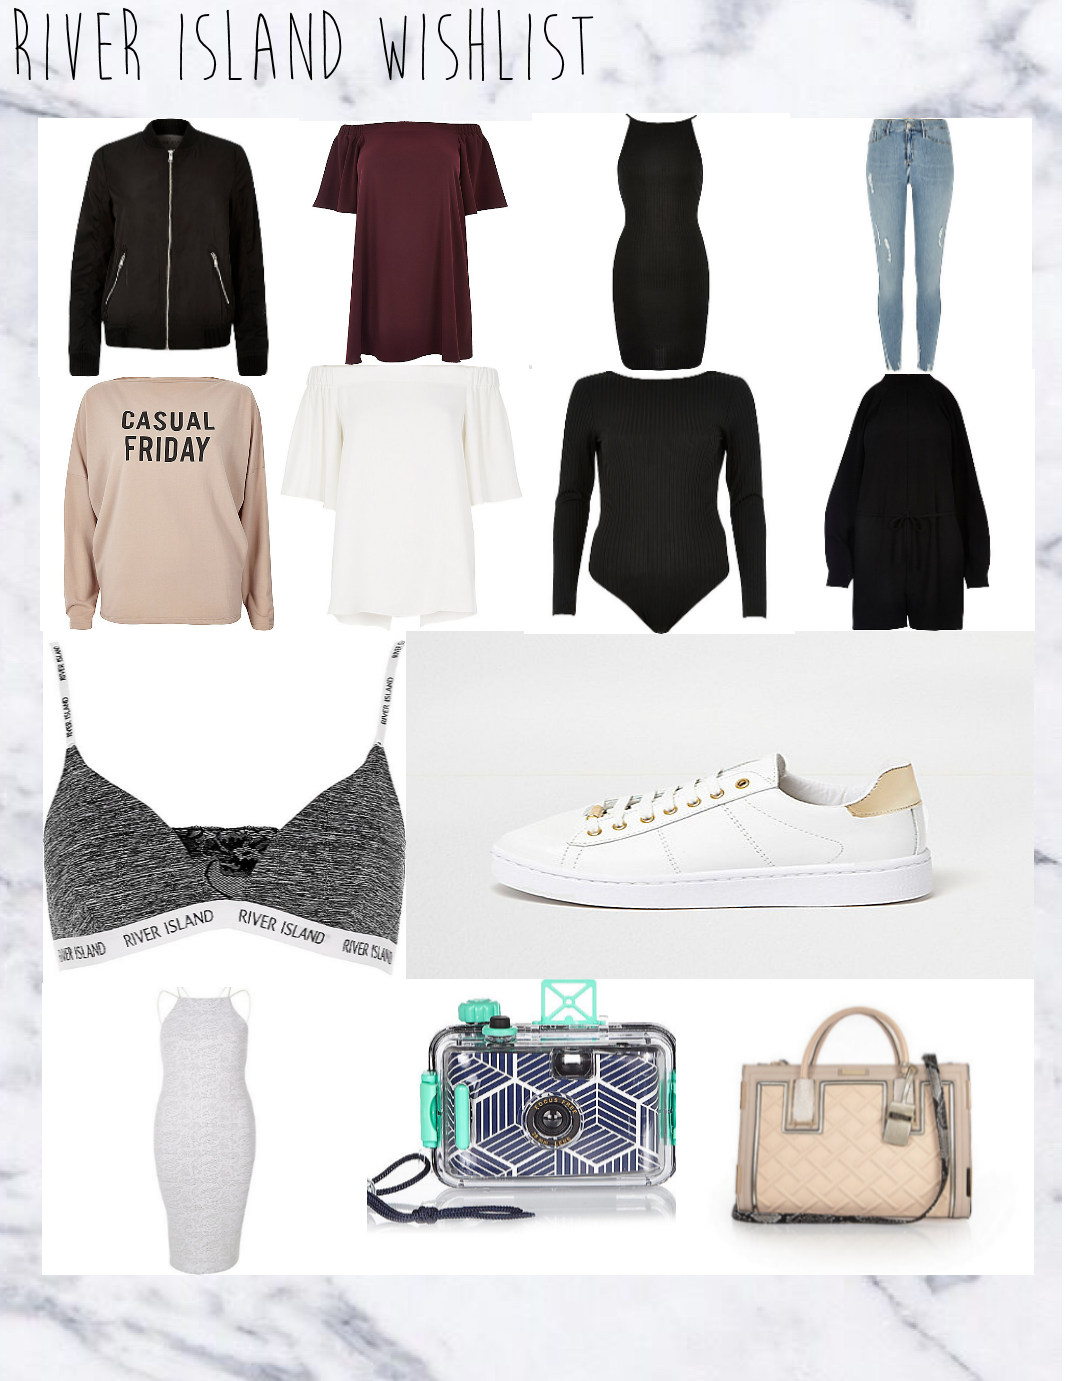 River Island Wish Lists